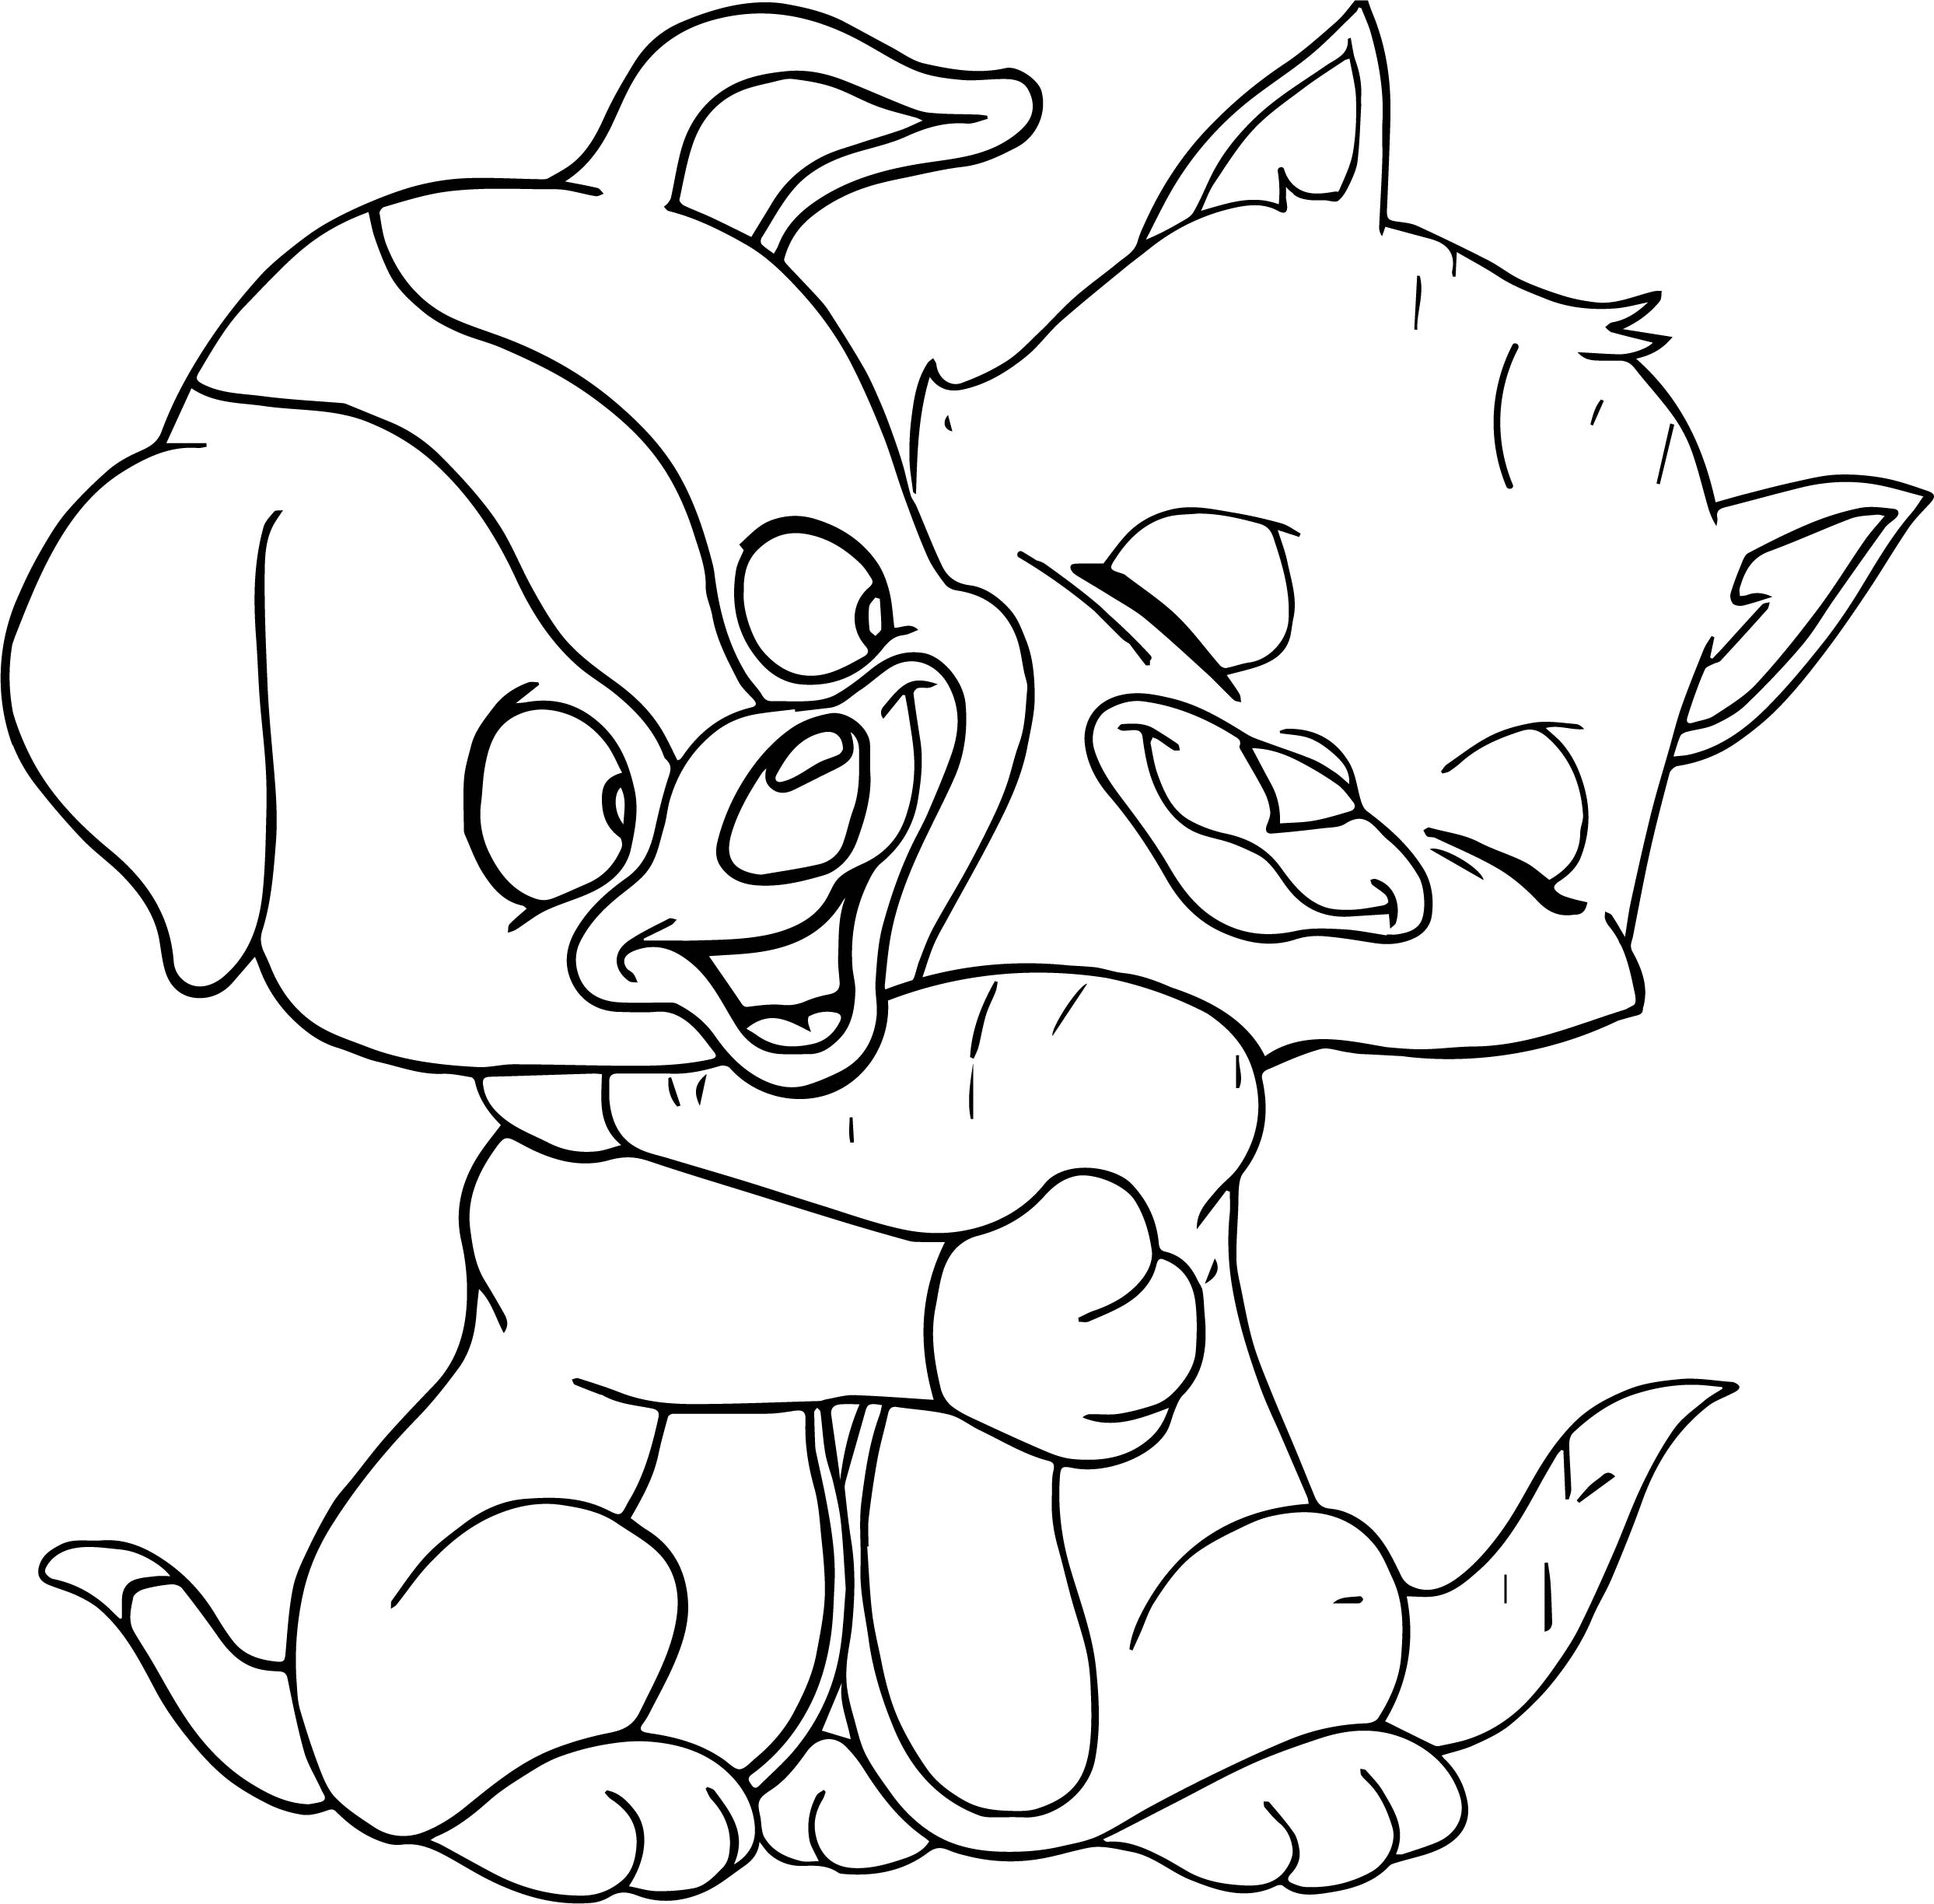 Cat Dog Hug Coloring Page